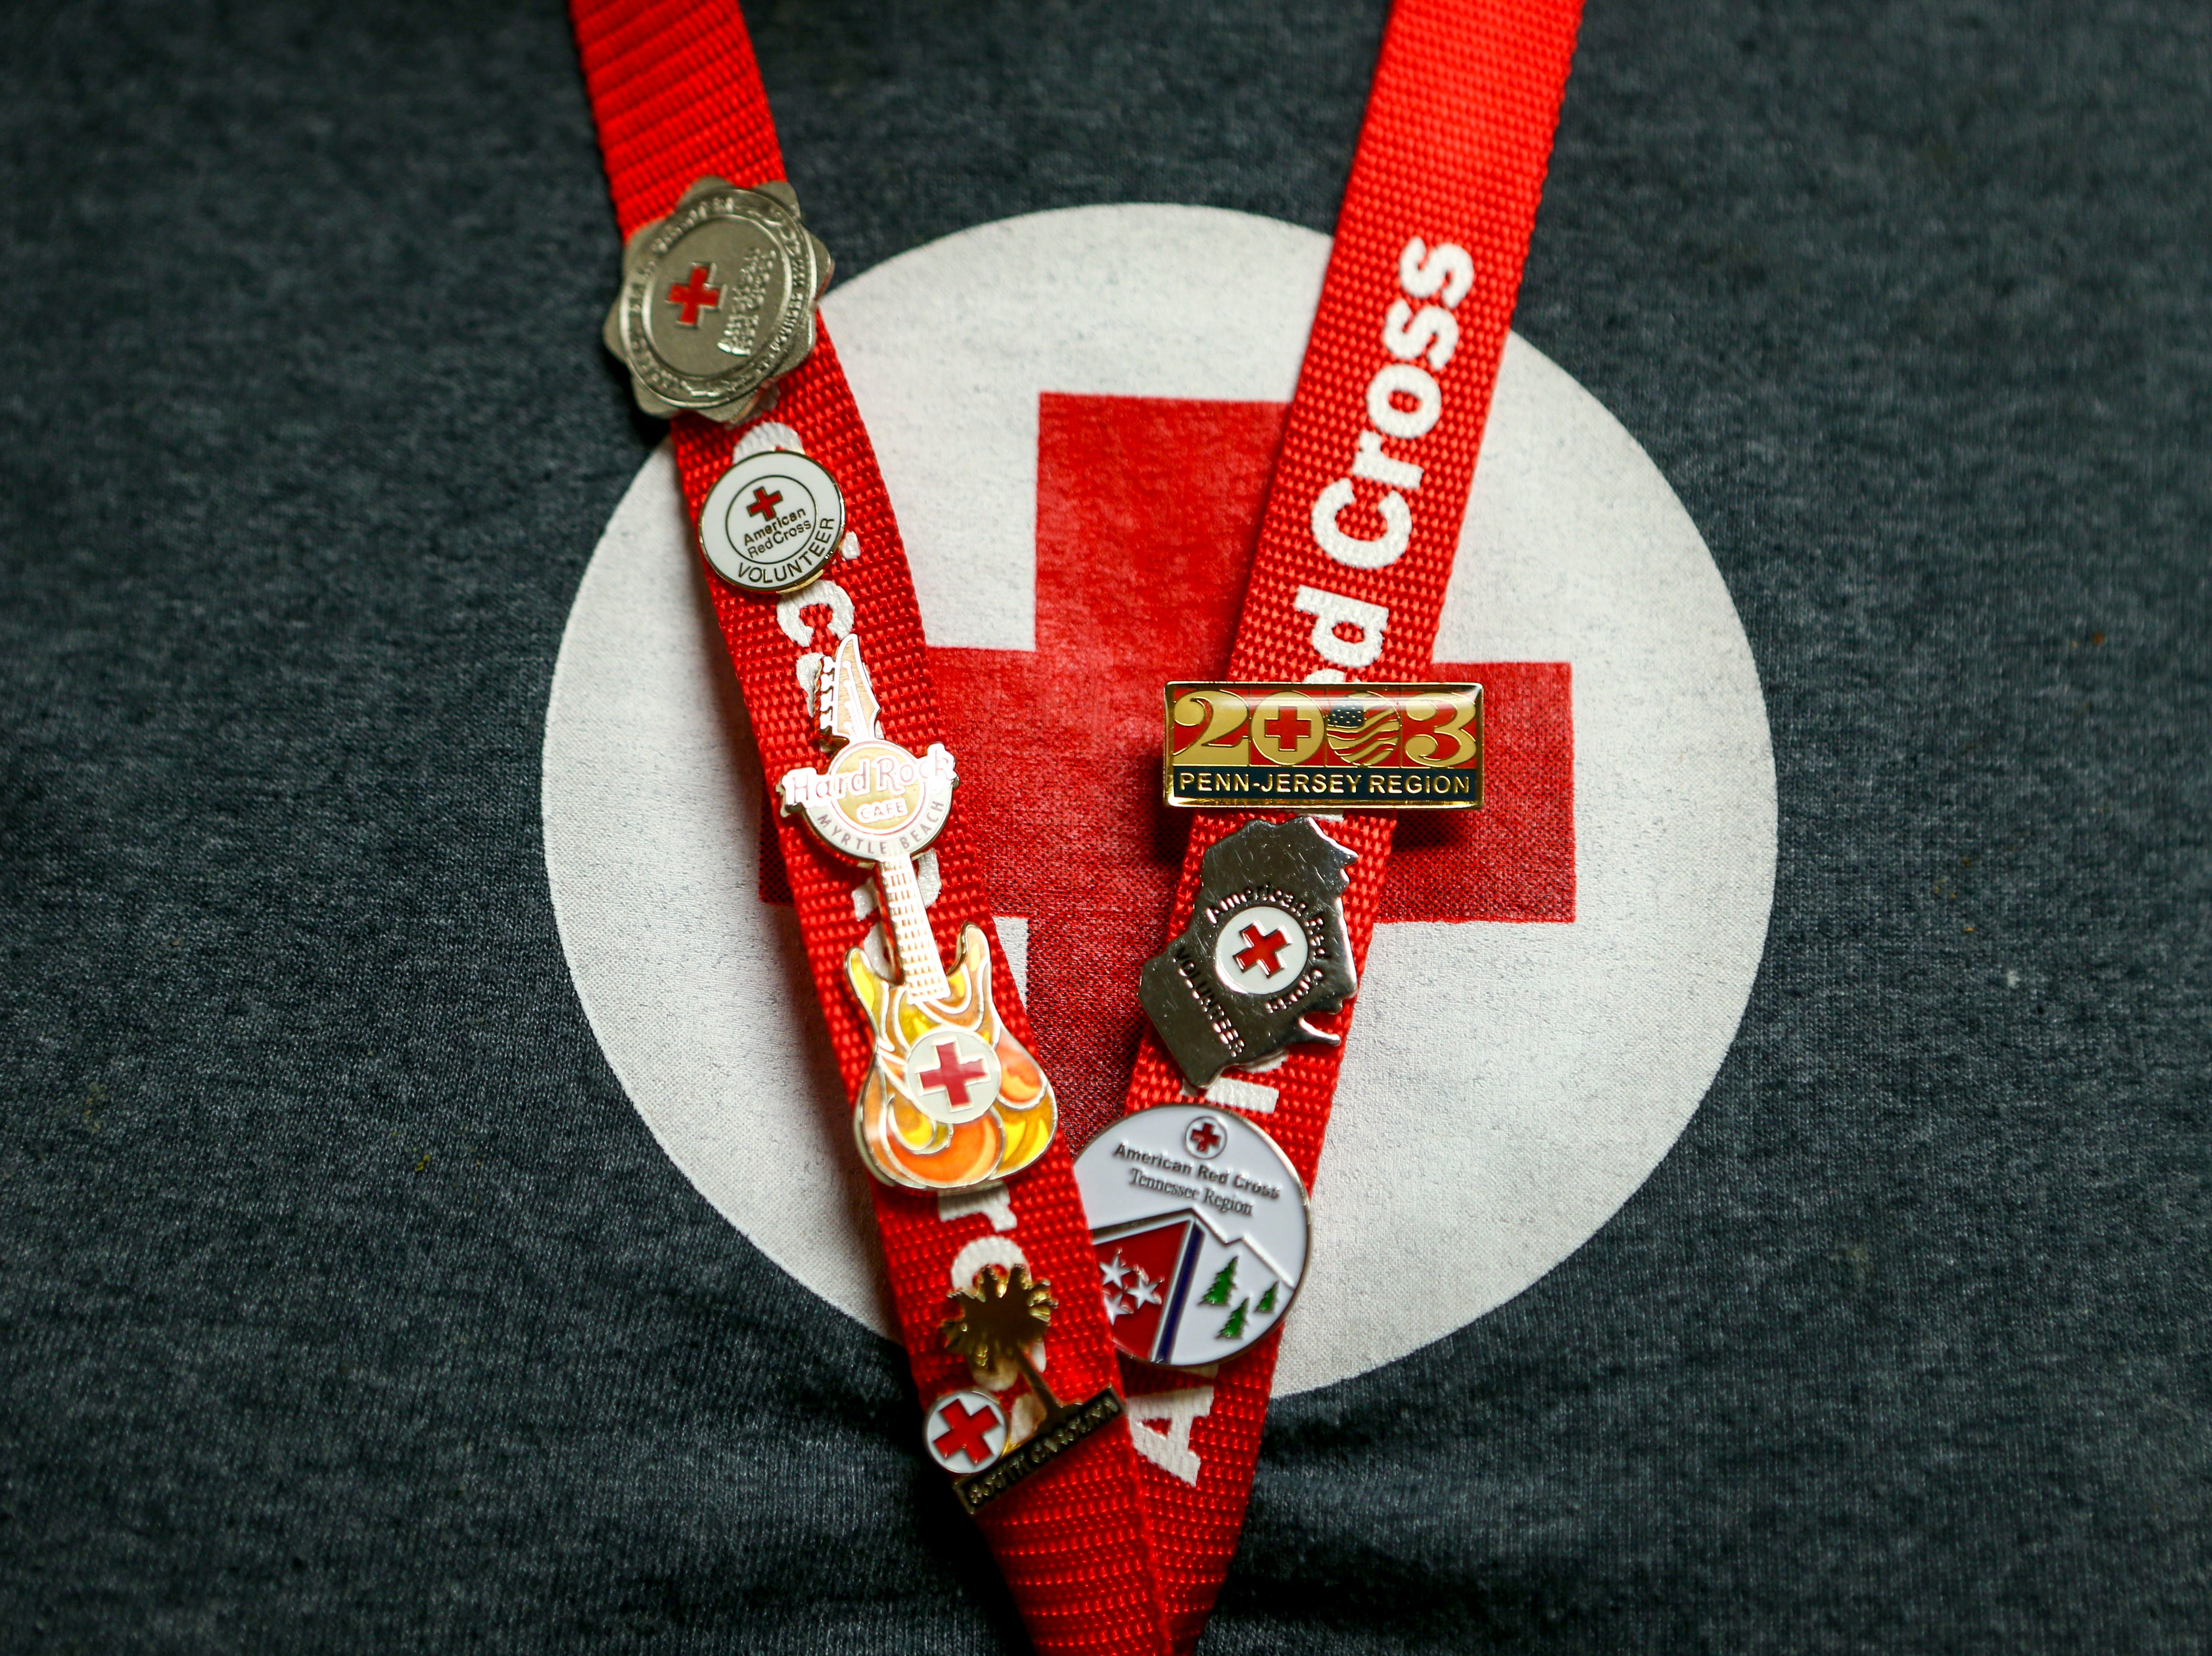 Shania Hart, the manager of the Red Cross shelter, wears her name tag with an assortment of pins she has collected at Savannah Church of Christ, in Savannah, Tenn., on Monday, Feb. 25, 2019.